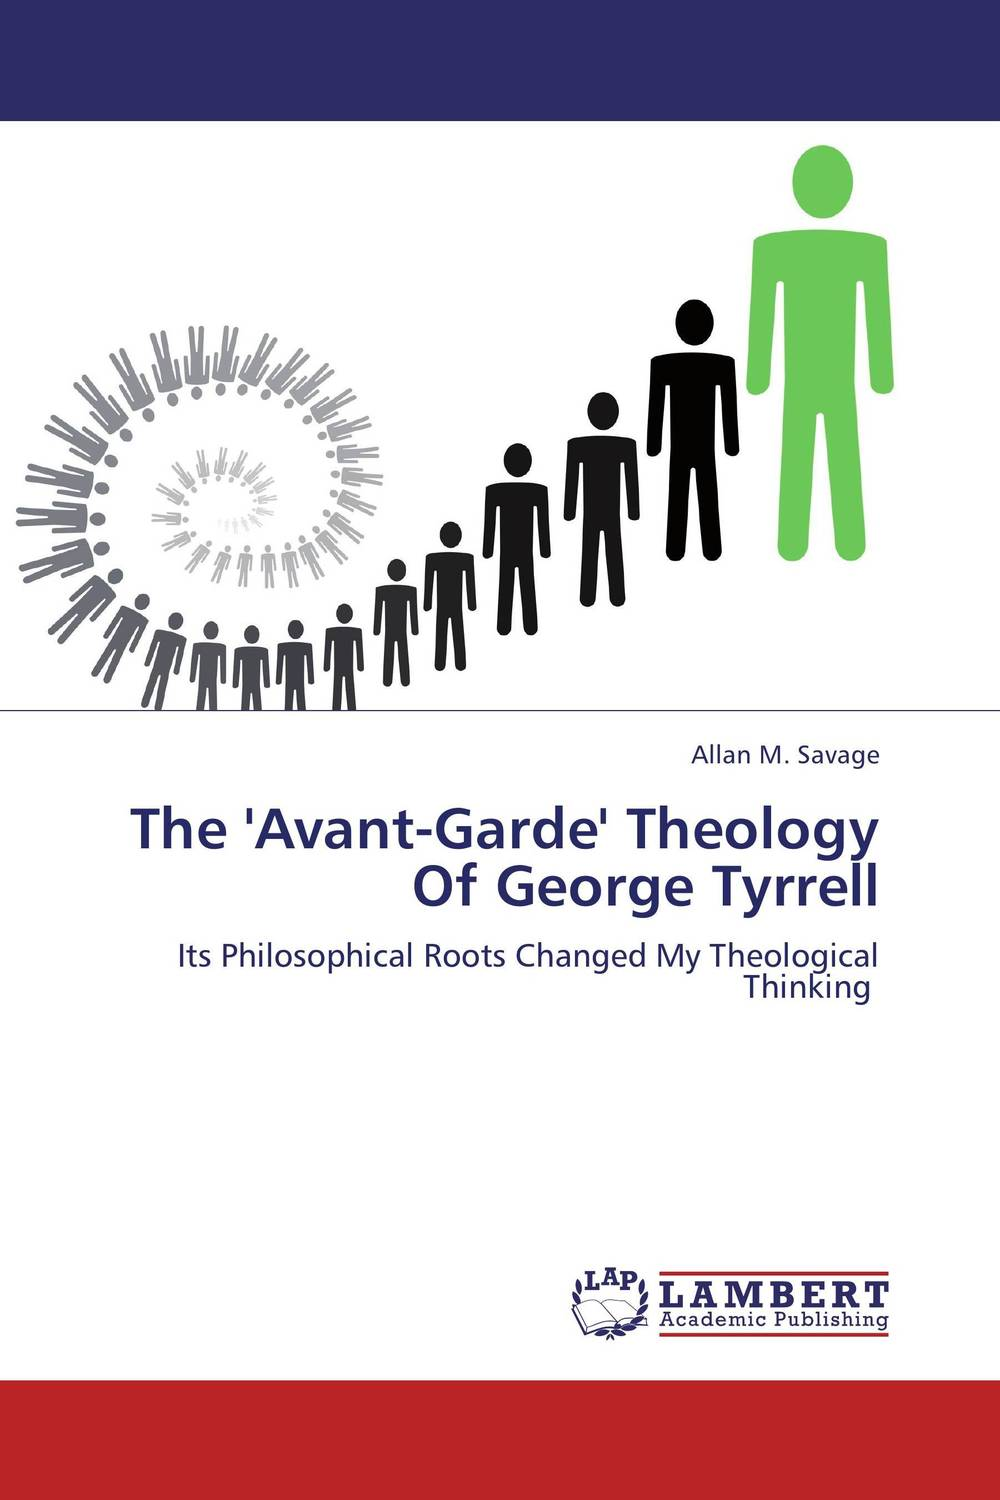 The 'Avant-Garde' Theology Of George Tyrrell hans joas g h mead – a contemporary re–examination of his thought